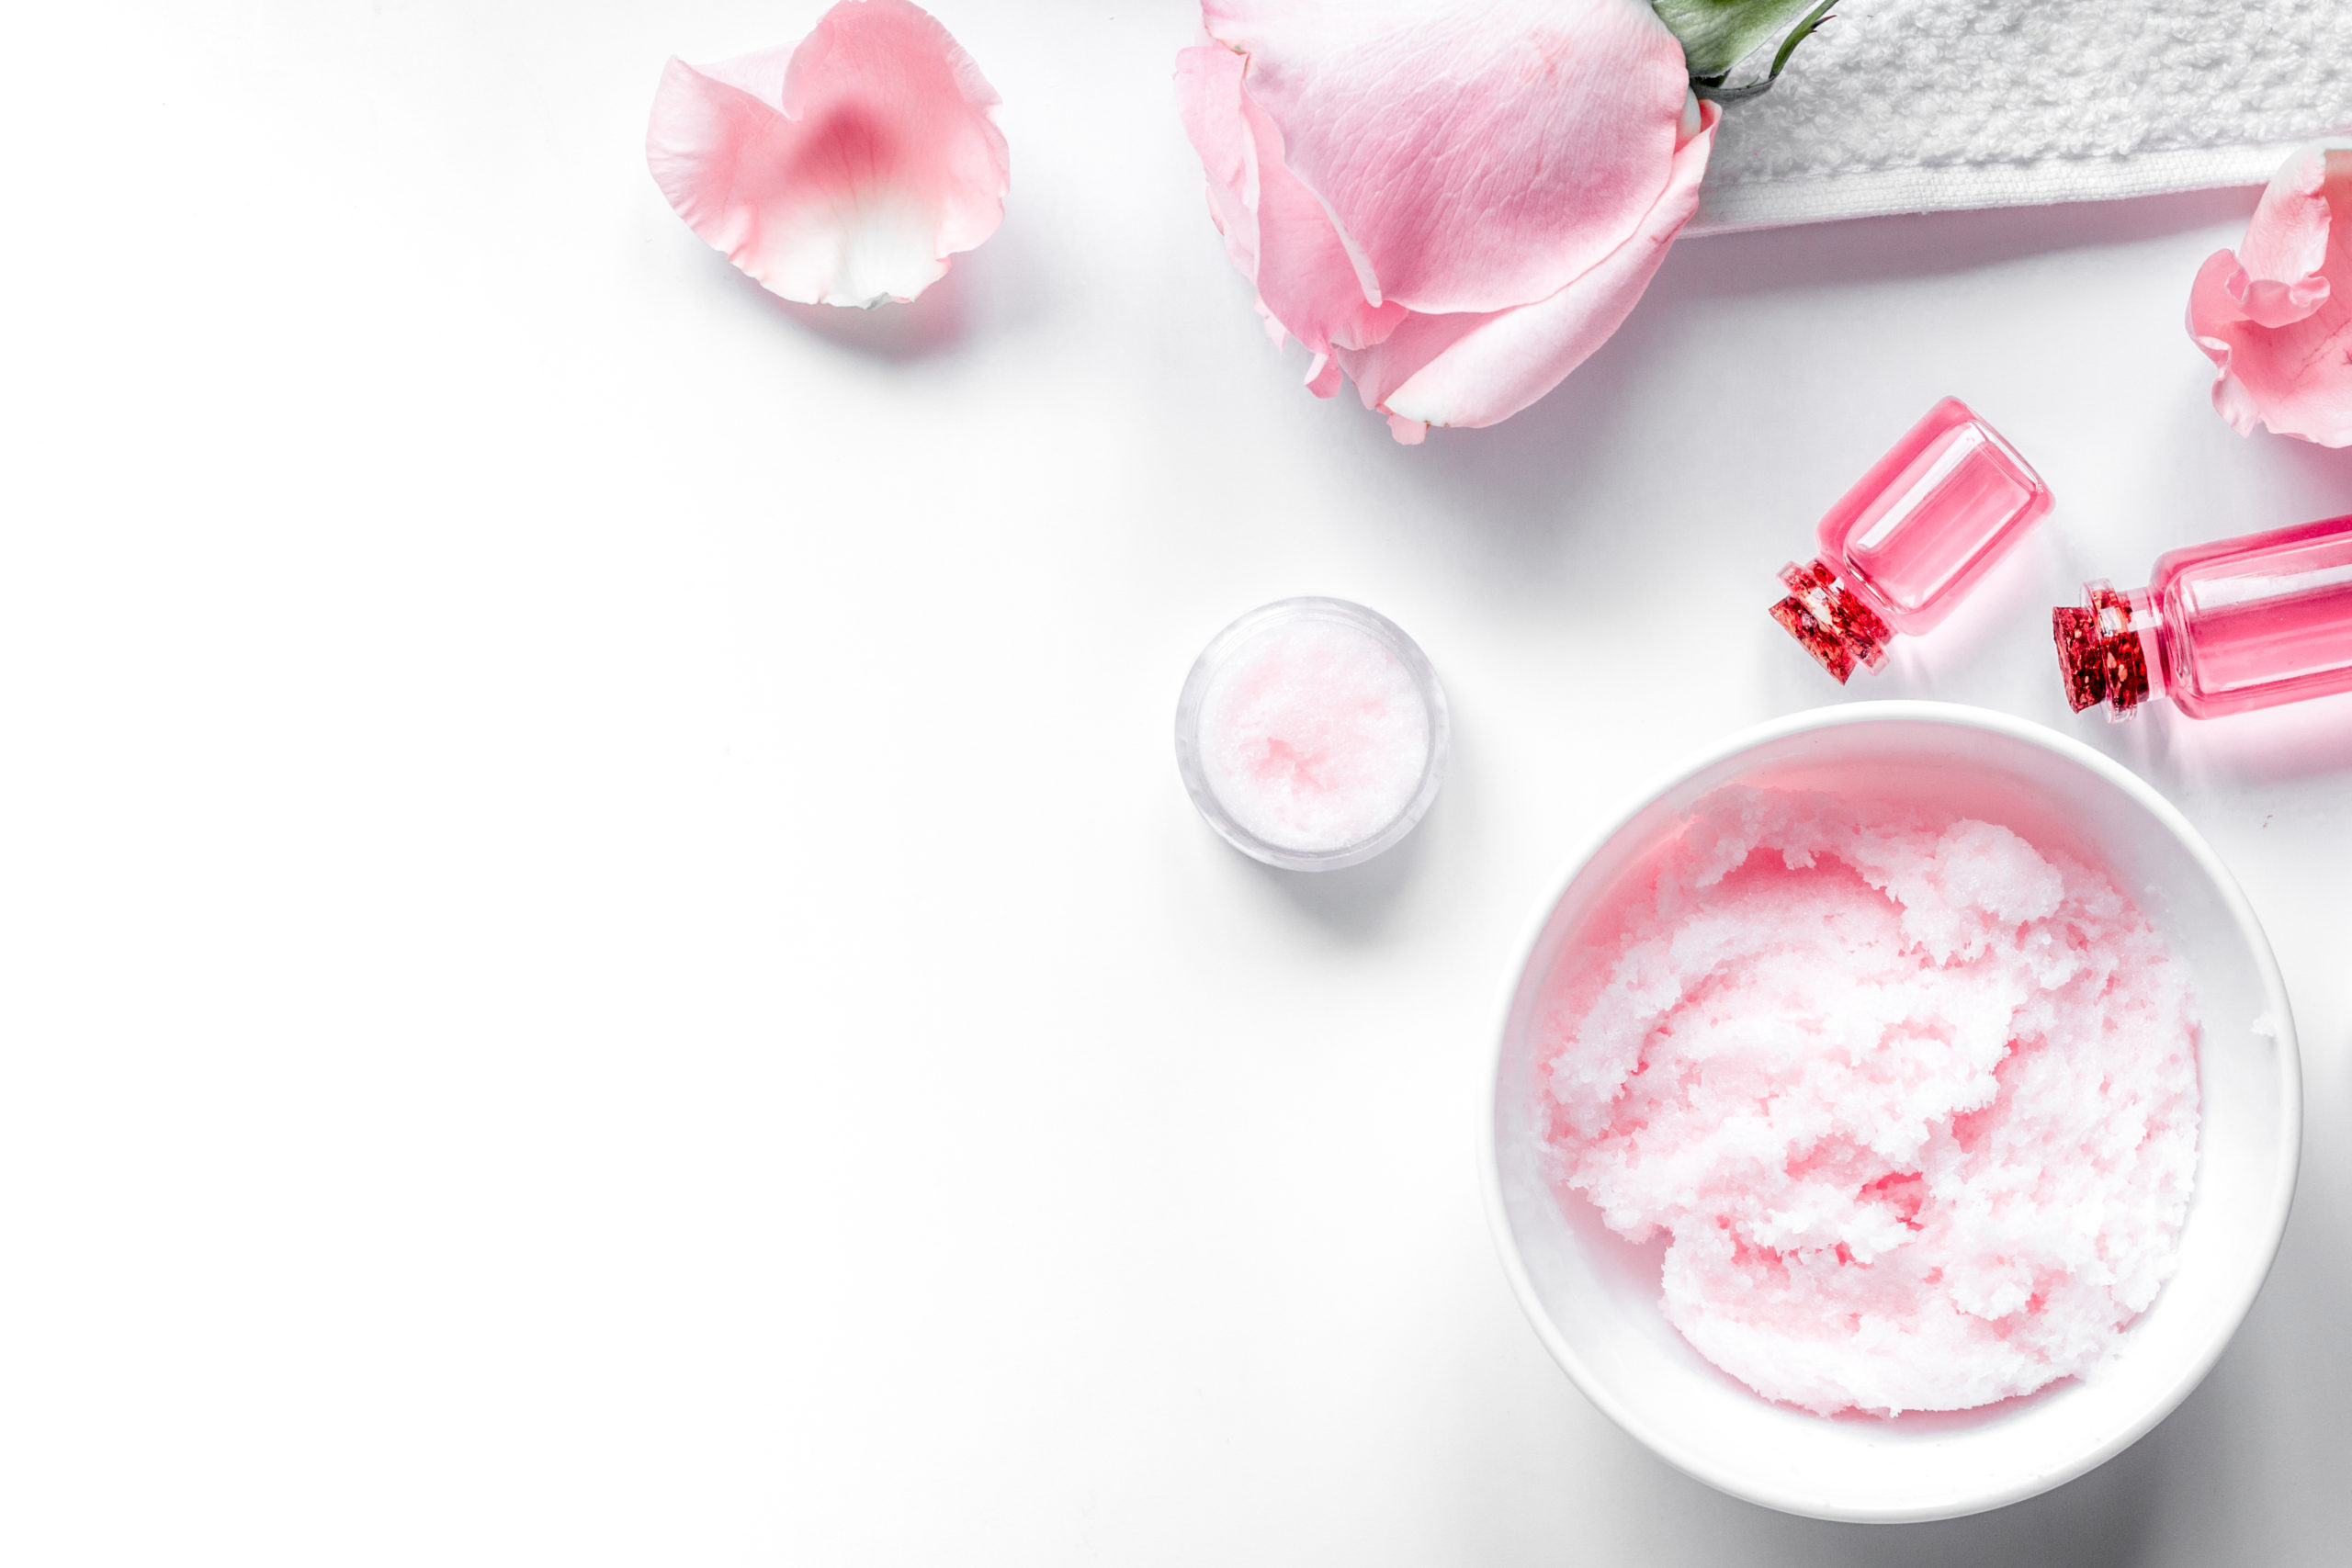 organic cosmetic with rose oil on white background top view.